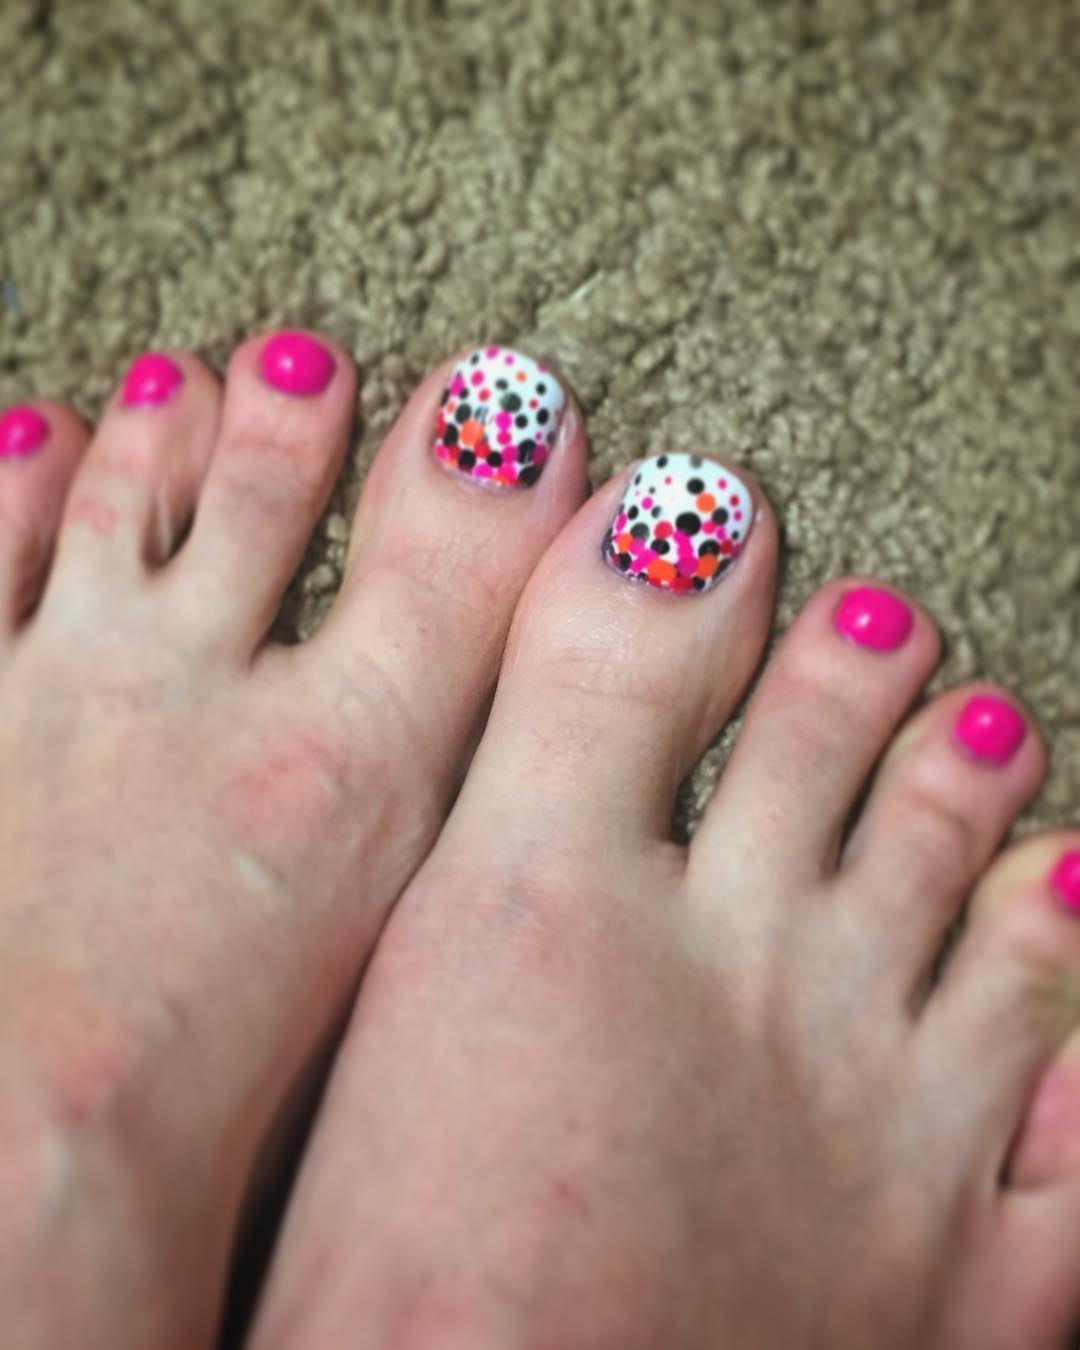 Awesome and Colorful Polka Dots Nail Art Design for Toe